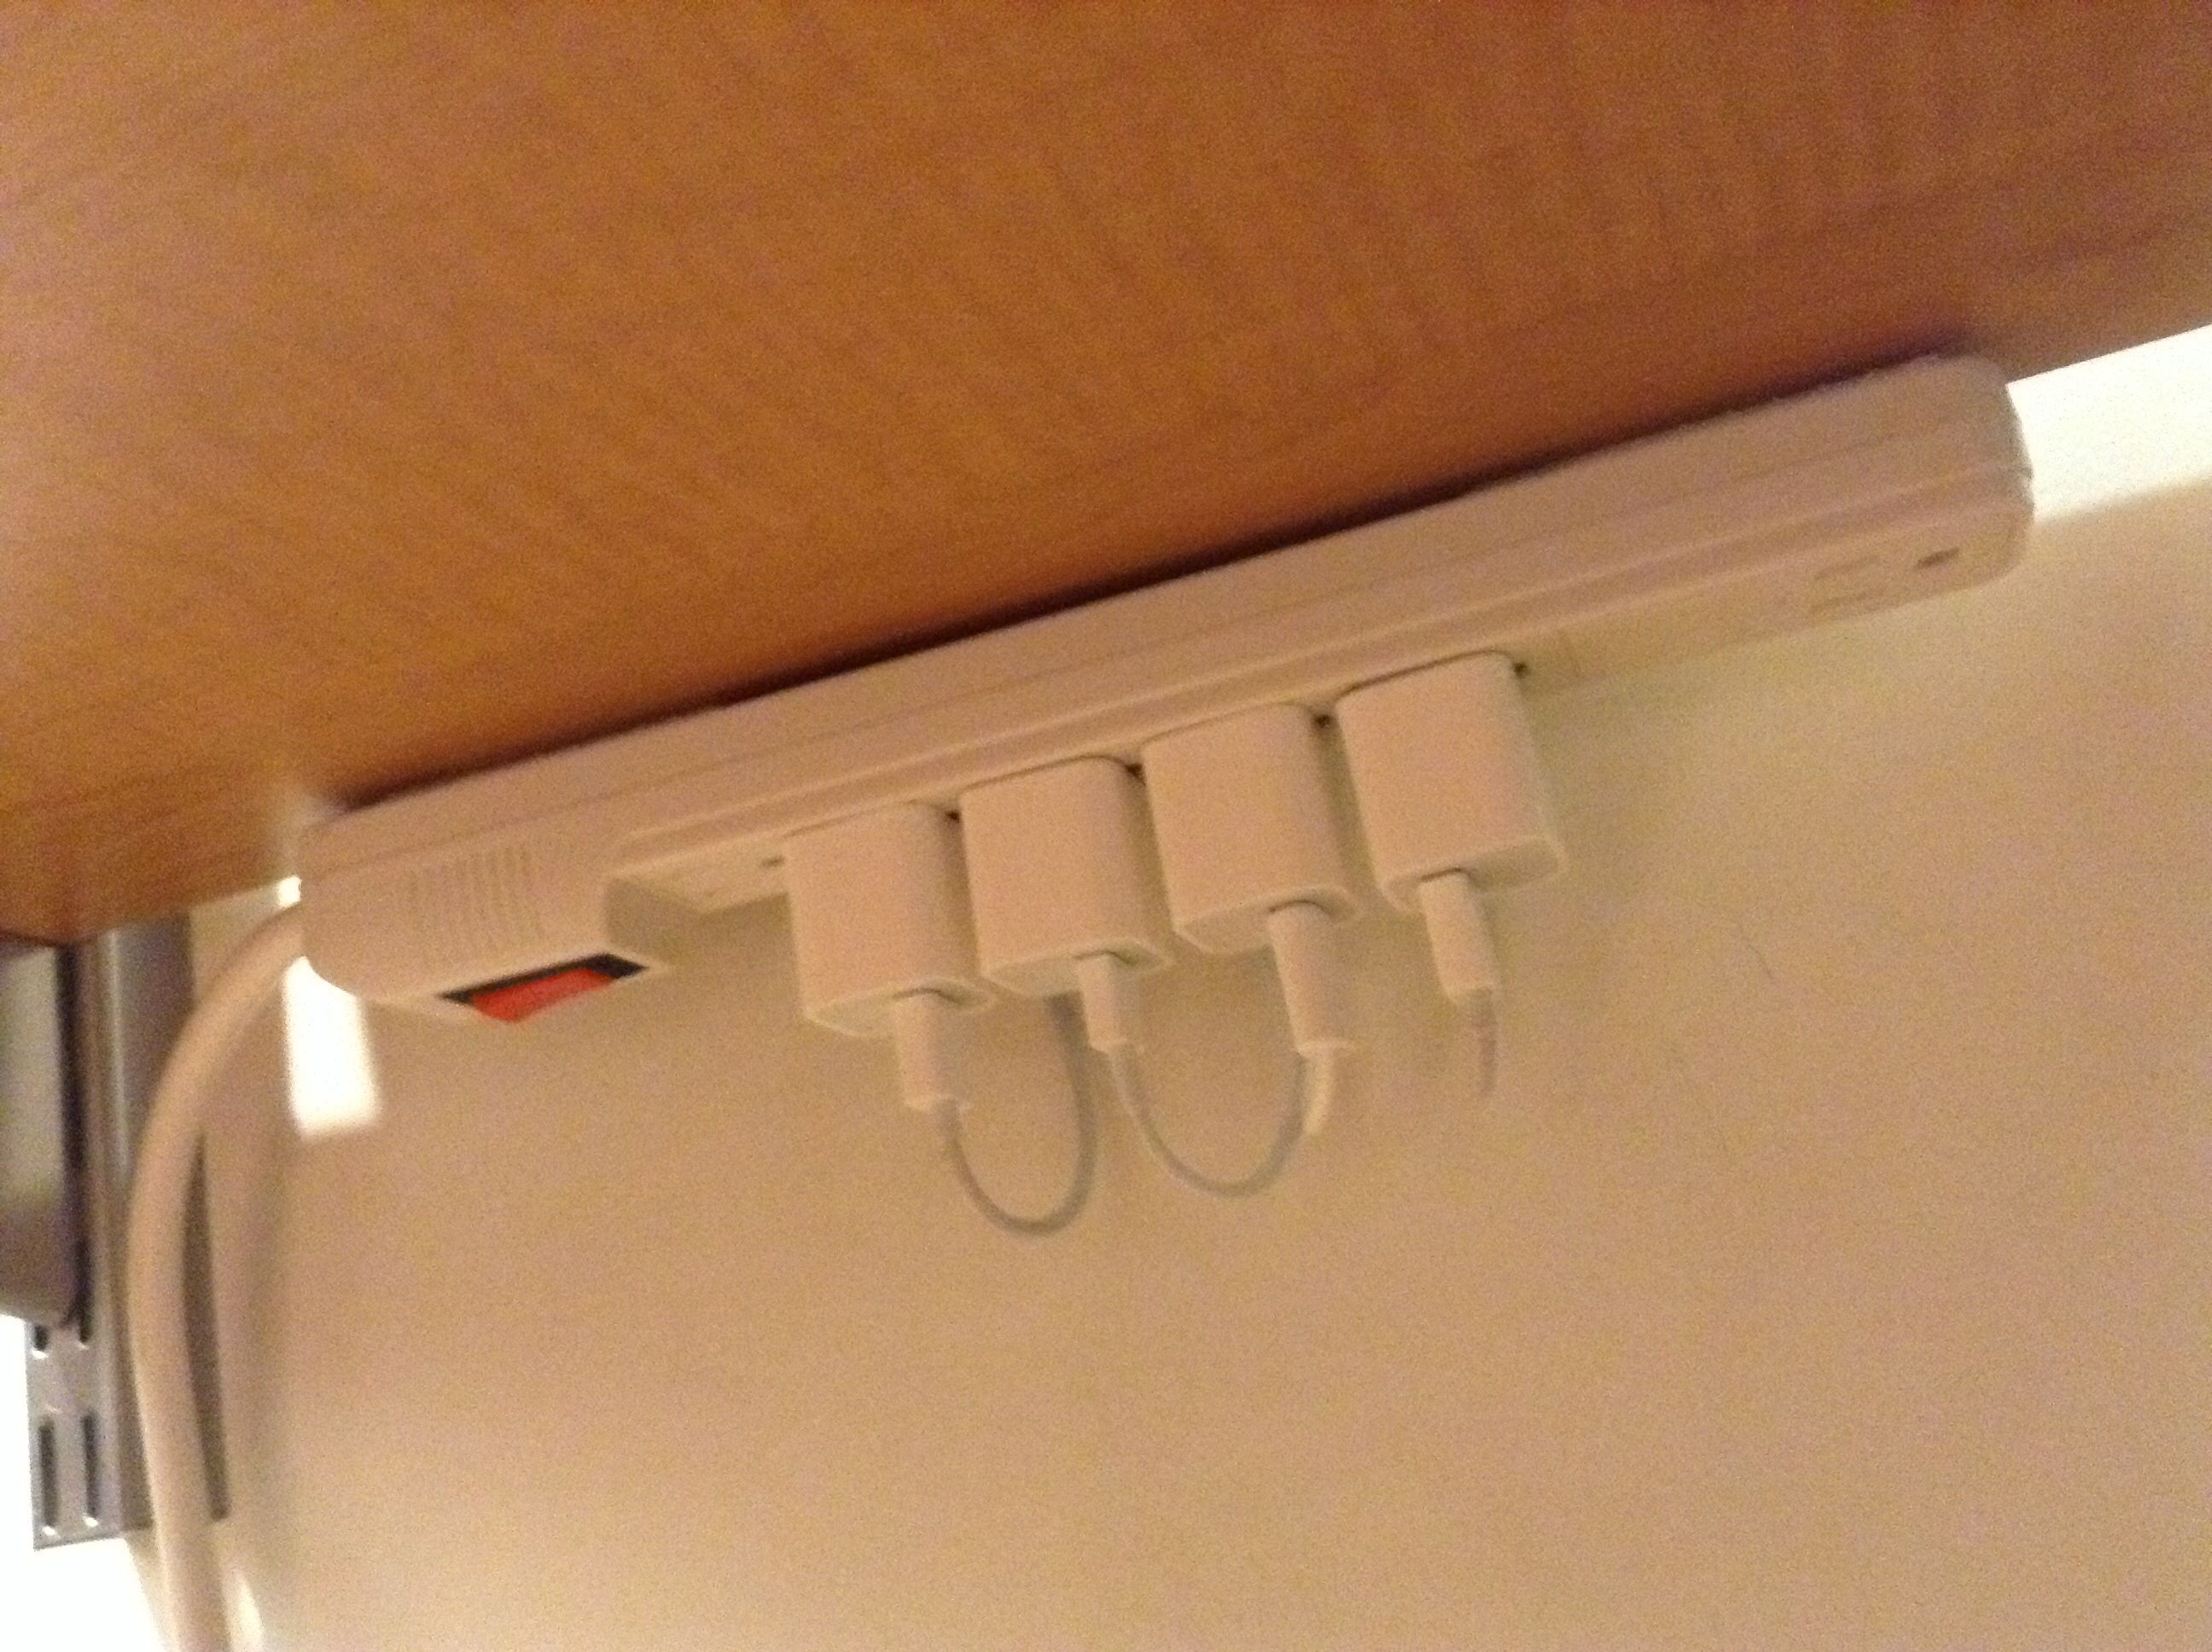 Use Velcro Command Strips To Attach Your Power Strip To The